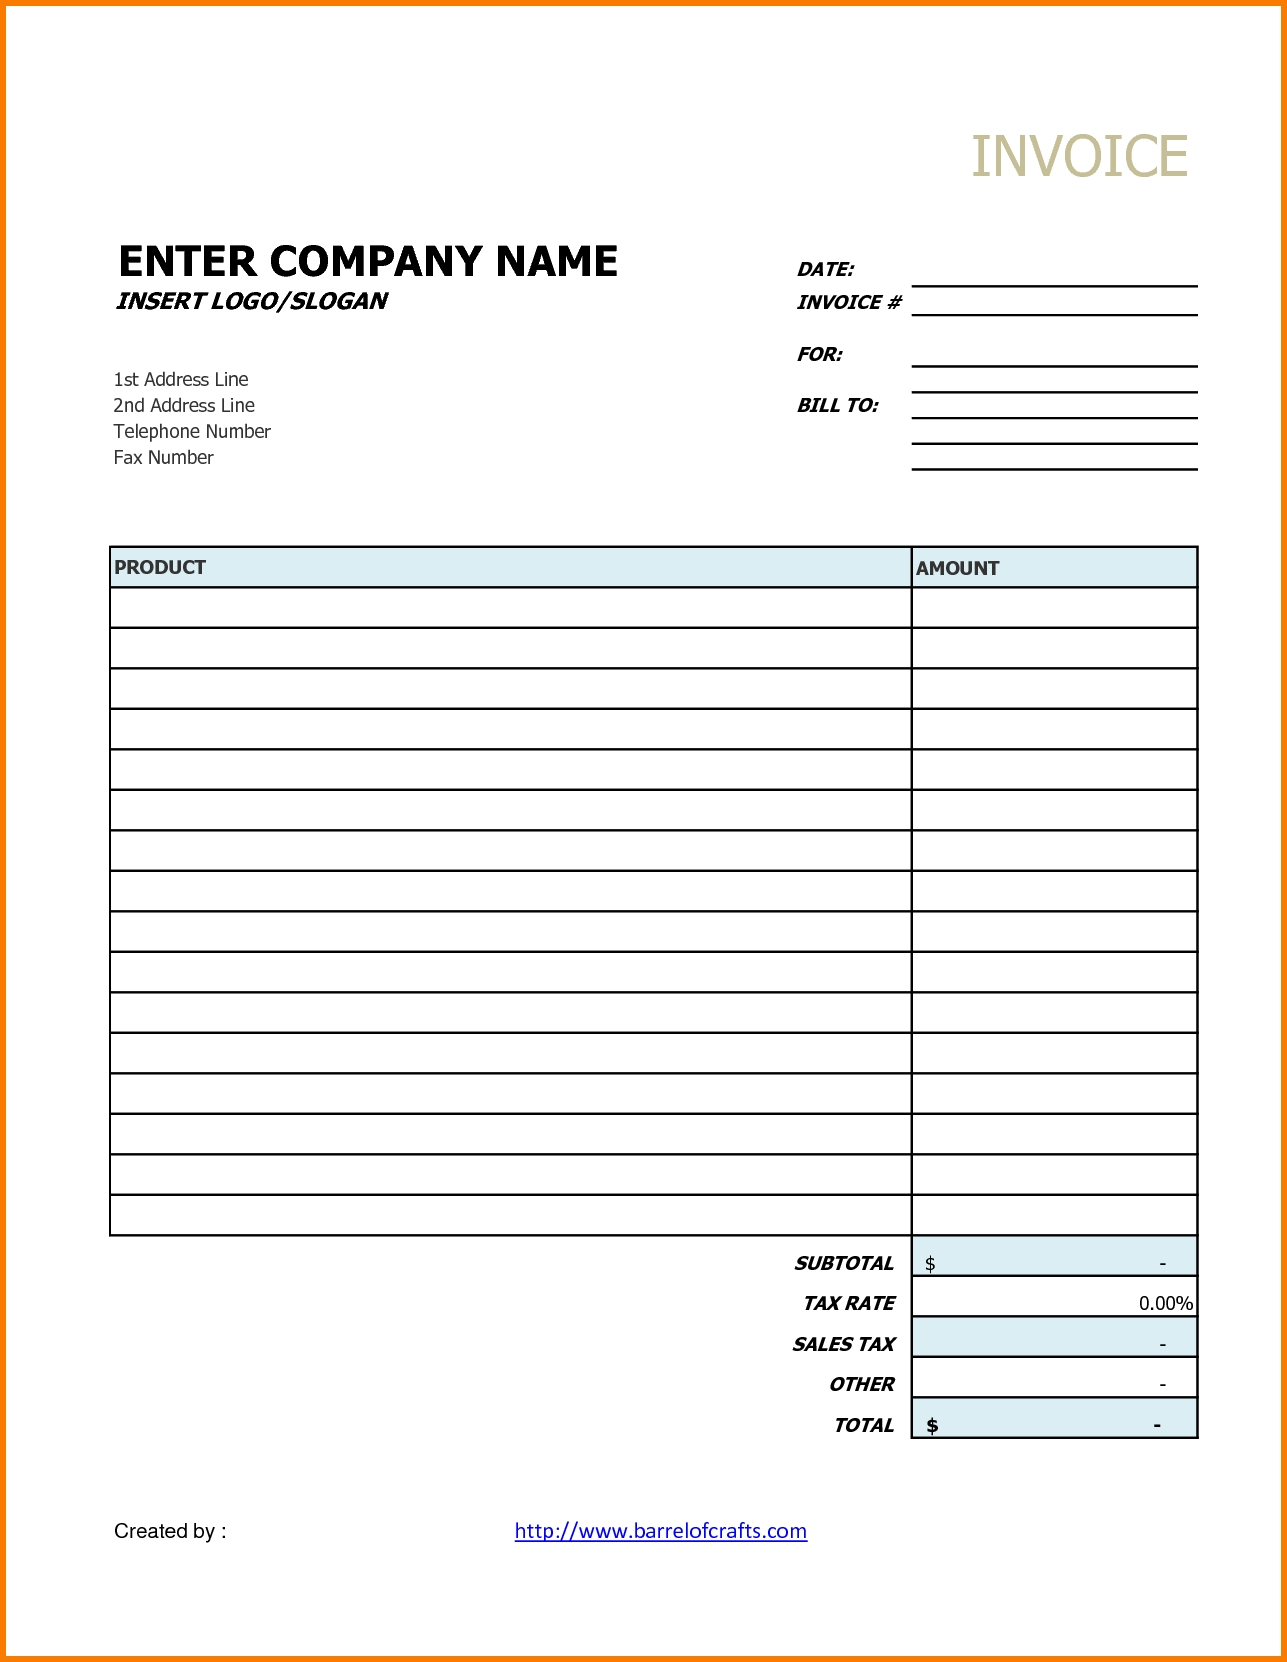 Invoice template google docs invoice template ideas for Java design document template